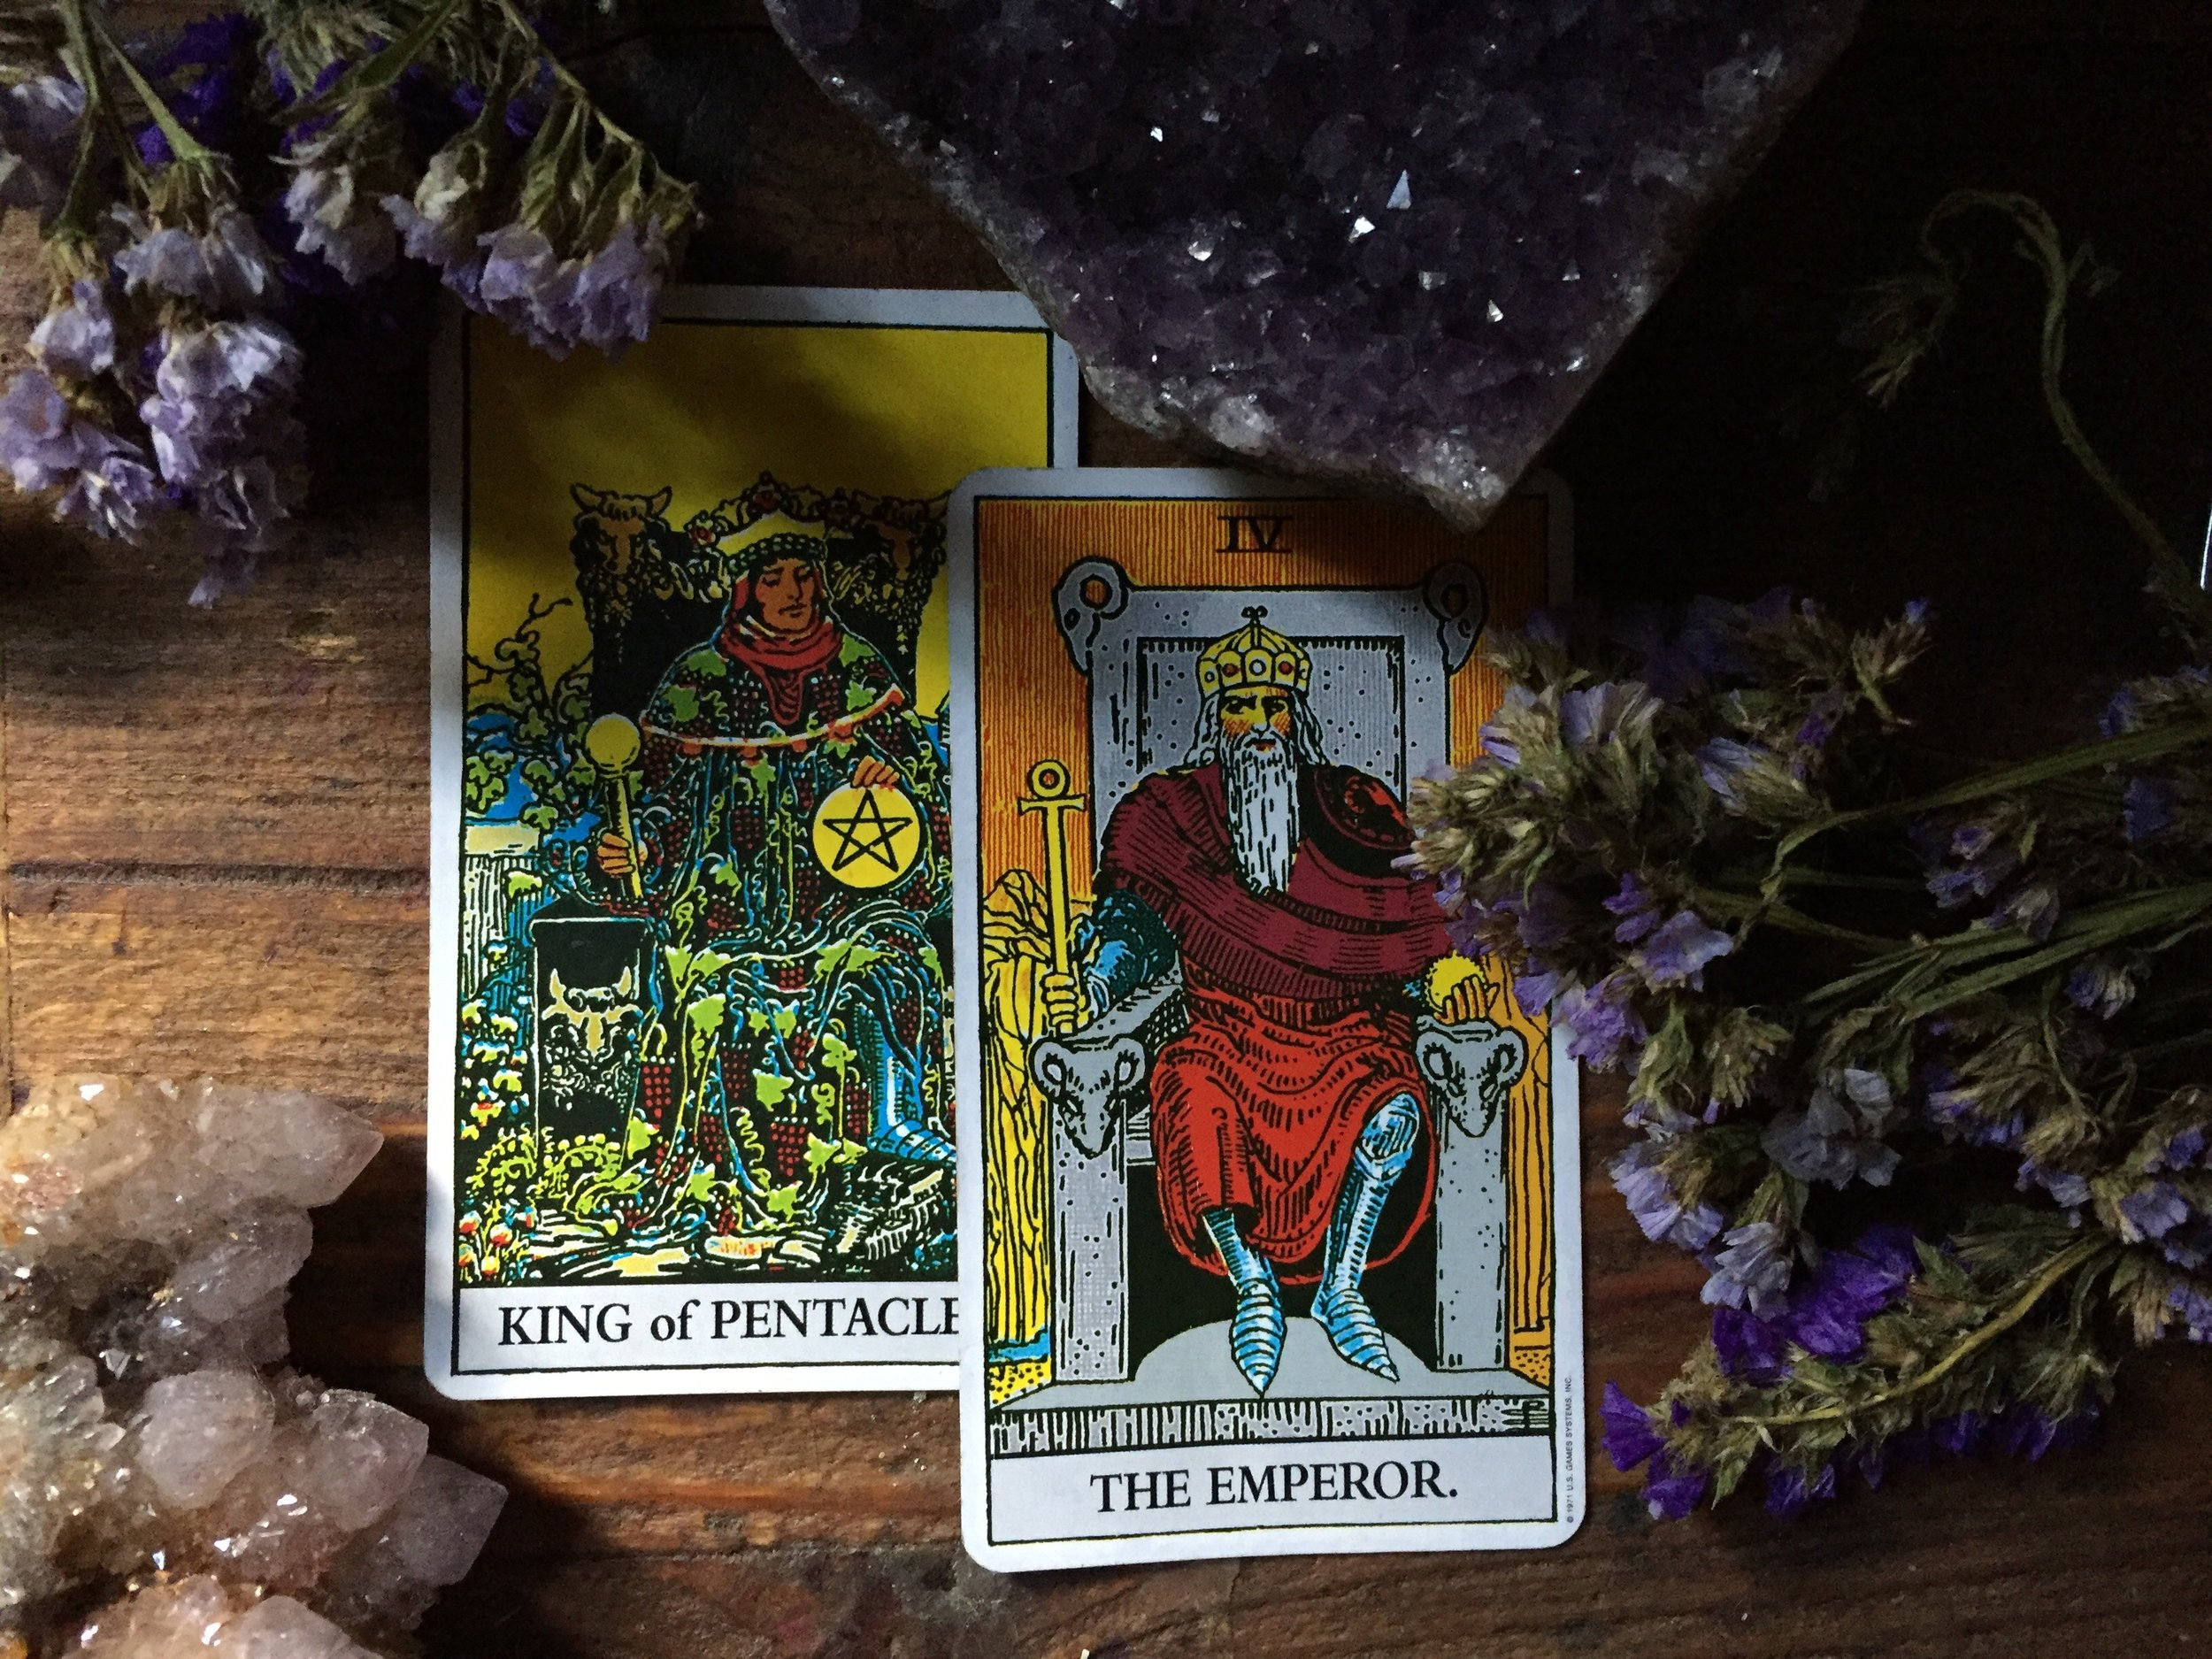 Subscribe for Weekly Updates! - New videos for Astrolgoy, Tarot, and Lifestyle!